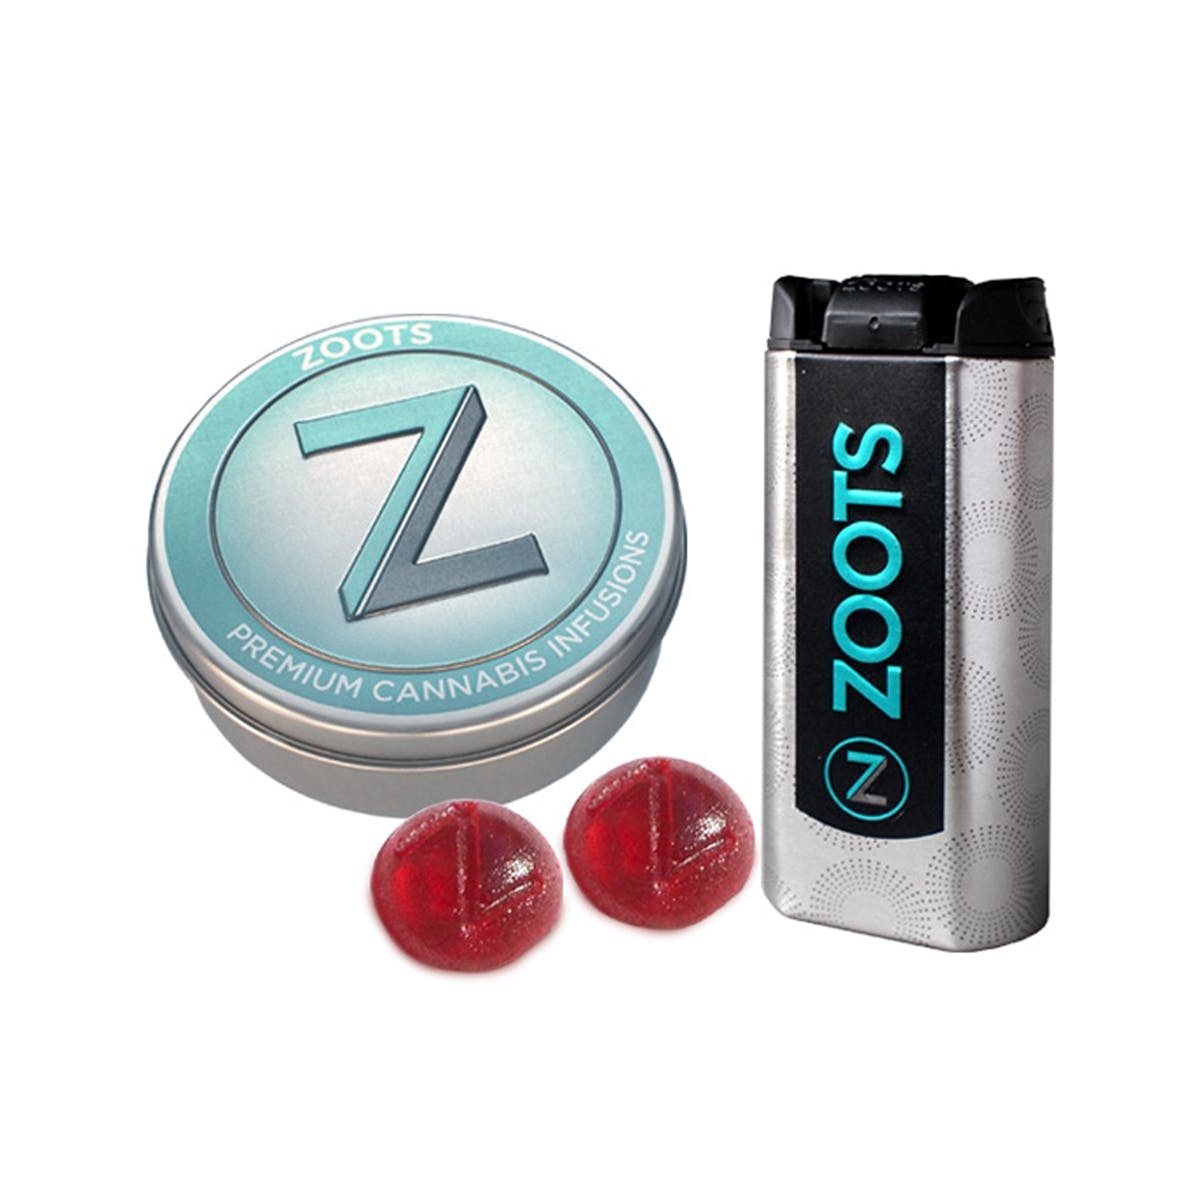 marijuana-dispensaries-hwy-420-silverdale-in-silverdale-zootrocks-cinnamon-100mg